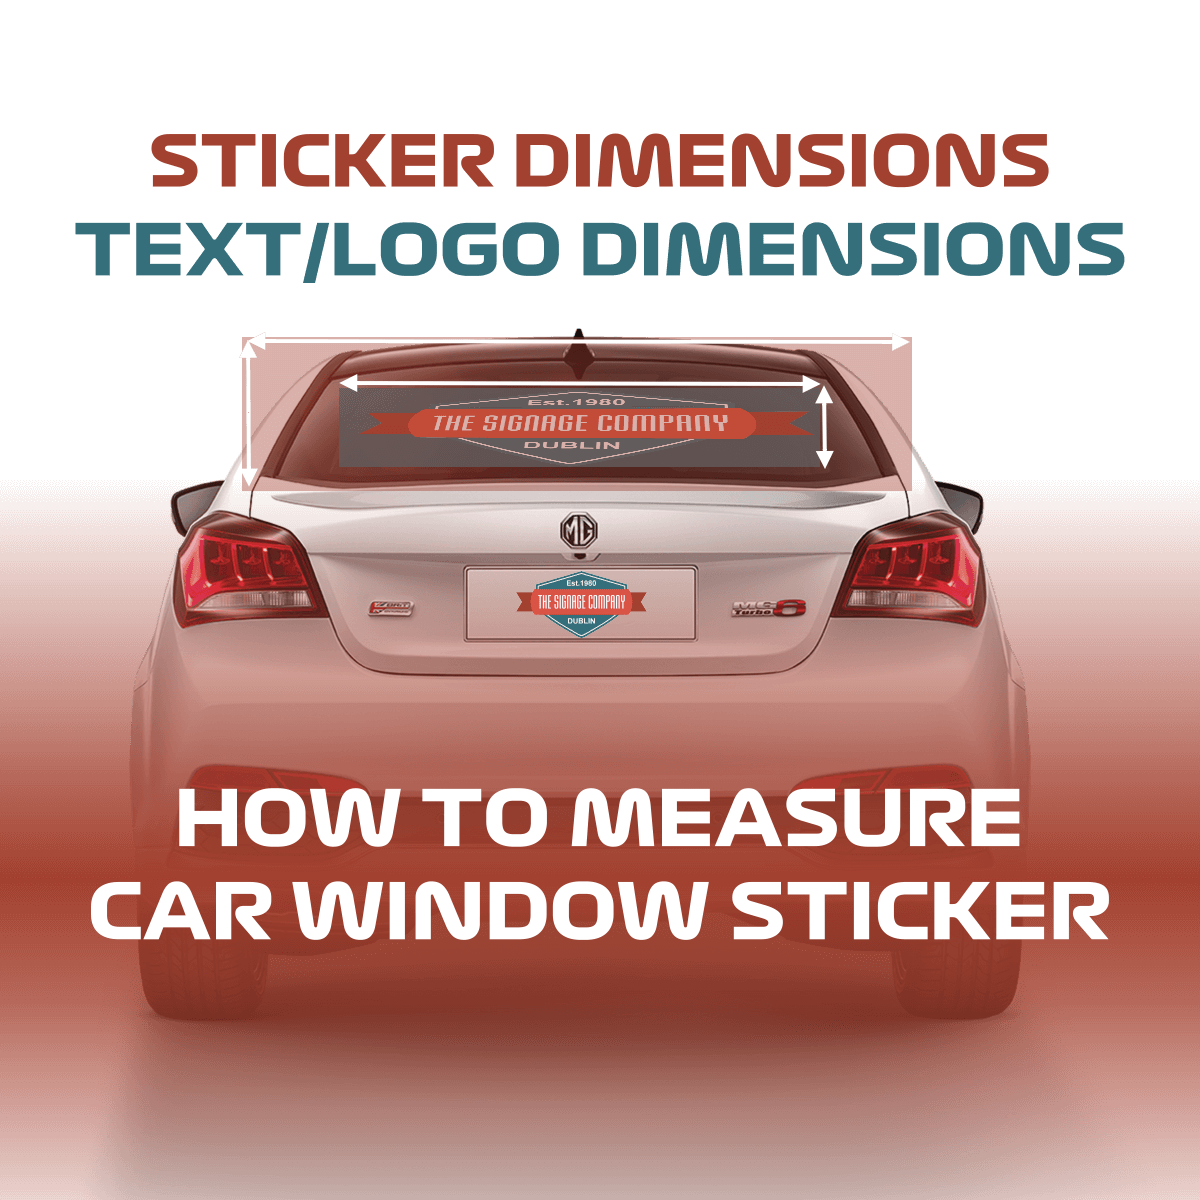 how to measure car window sticker size correctly